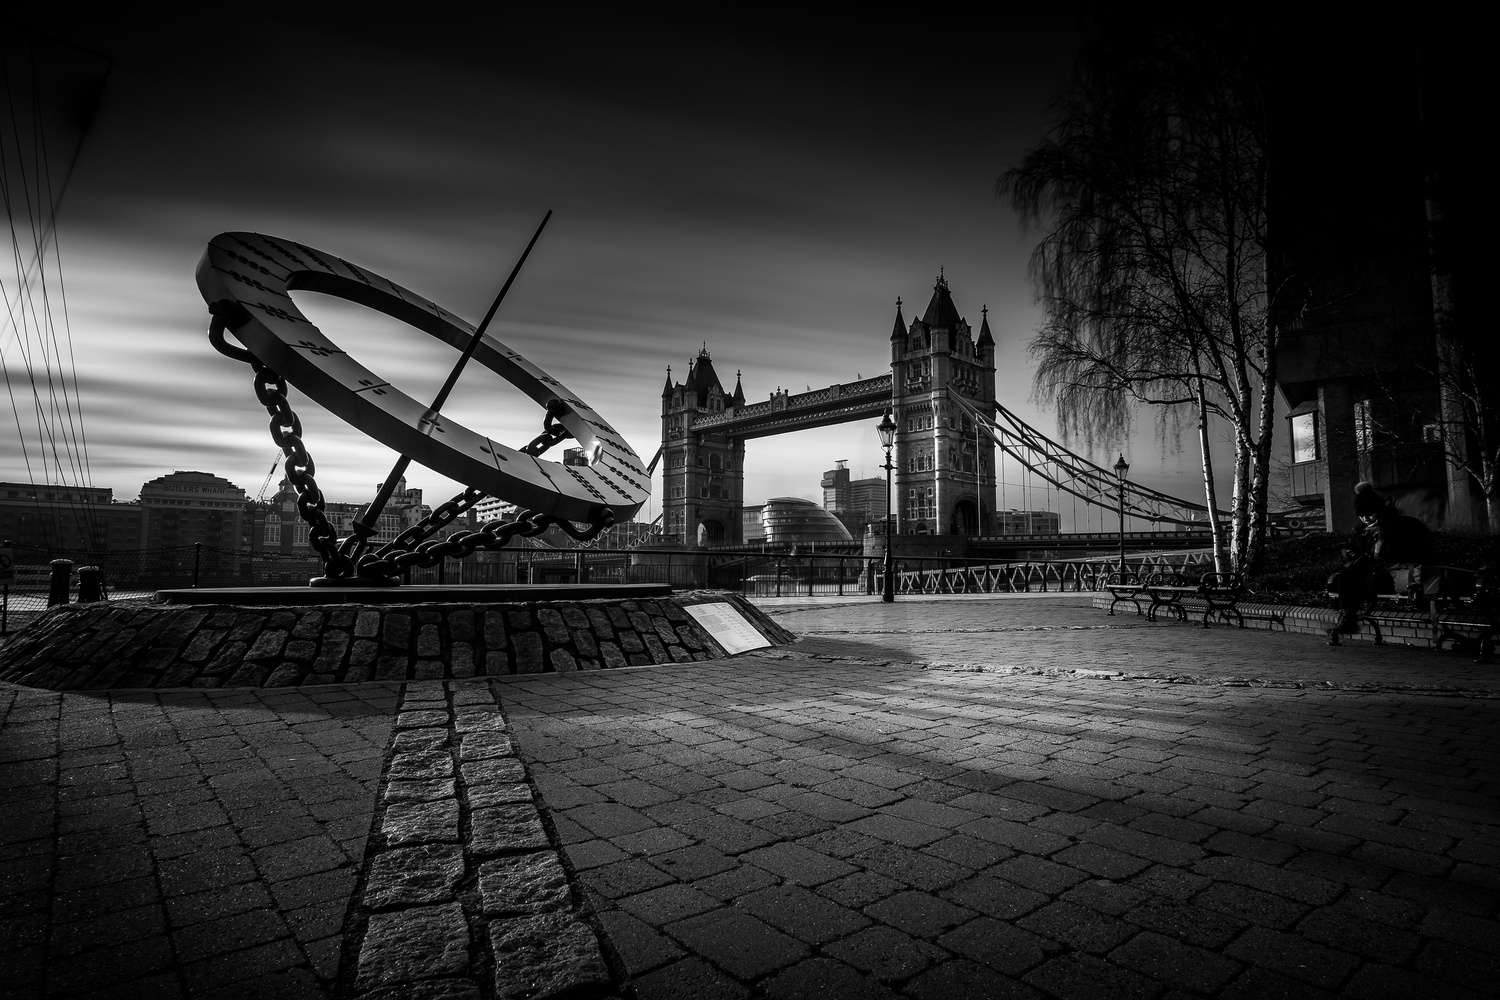 The sun clock and the tower bridge by Laurent J.A. Belener